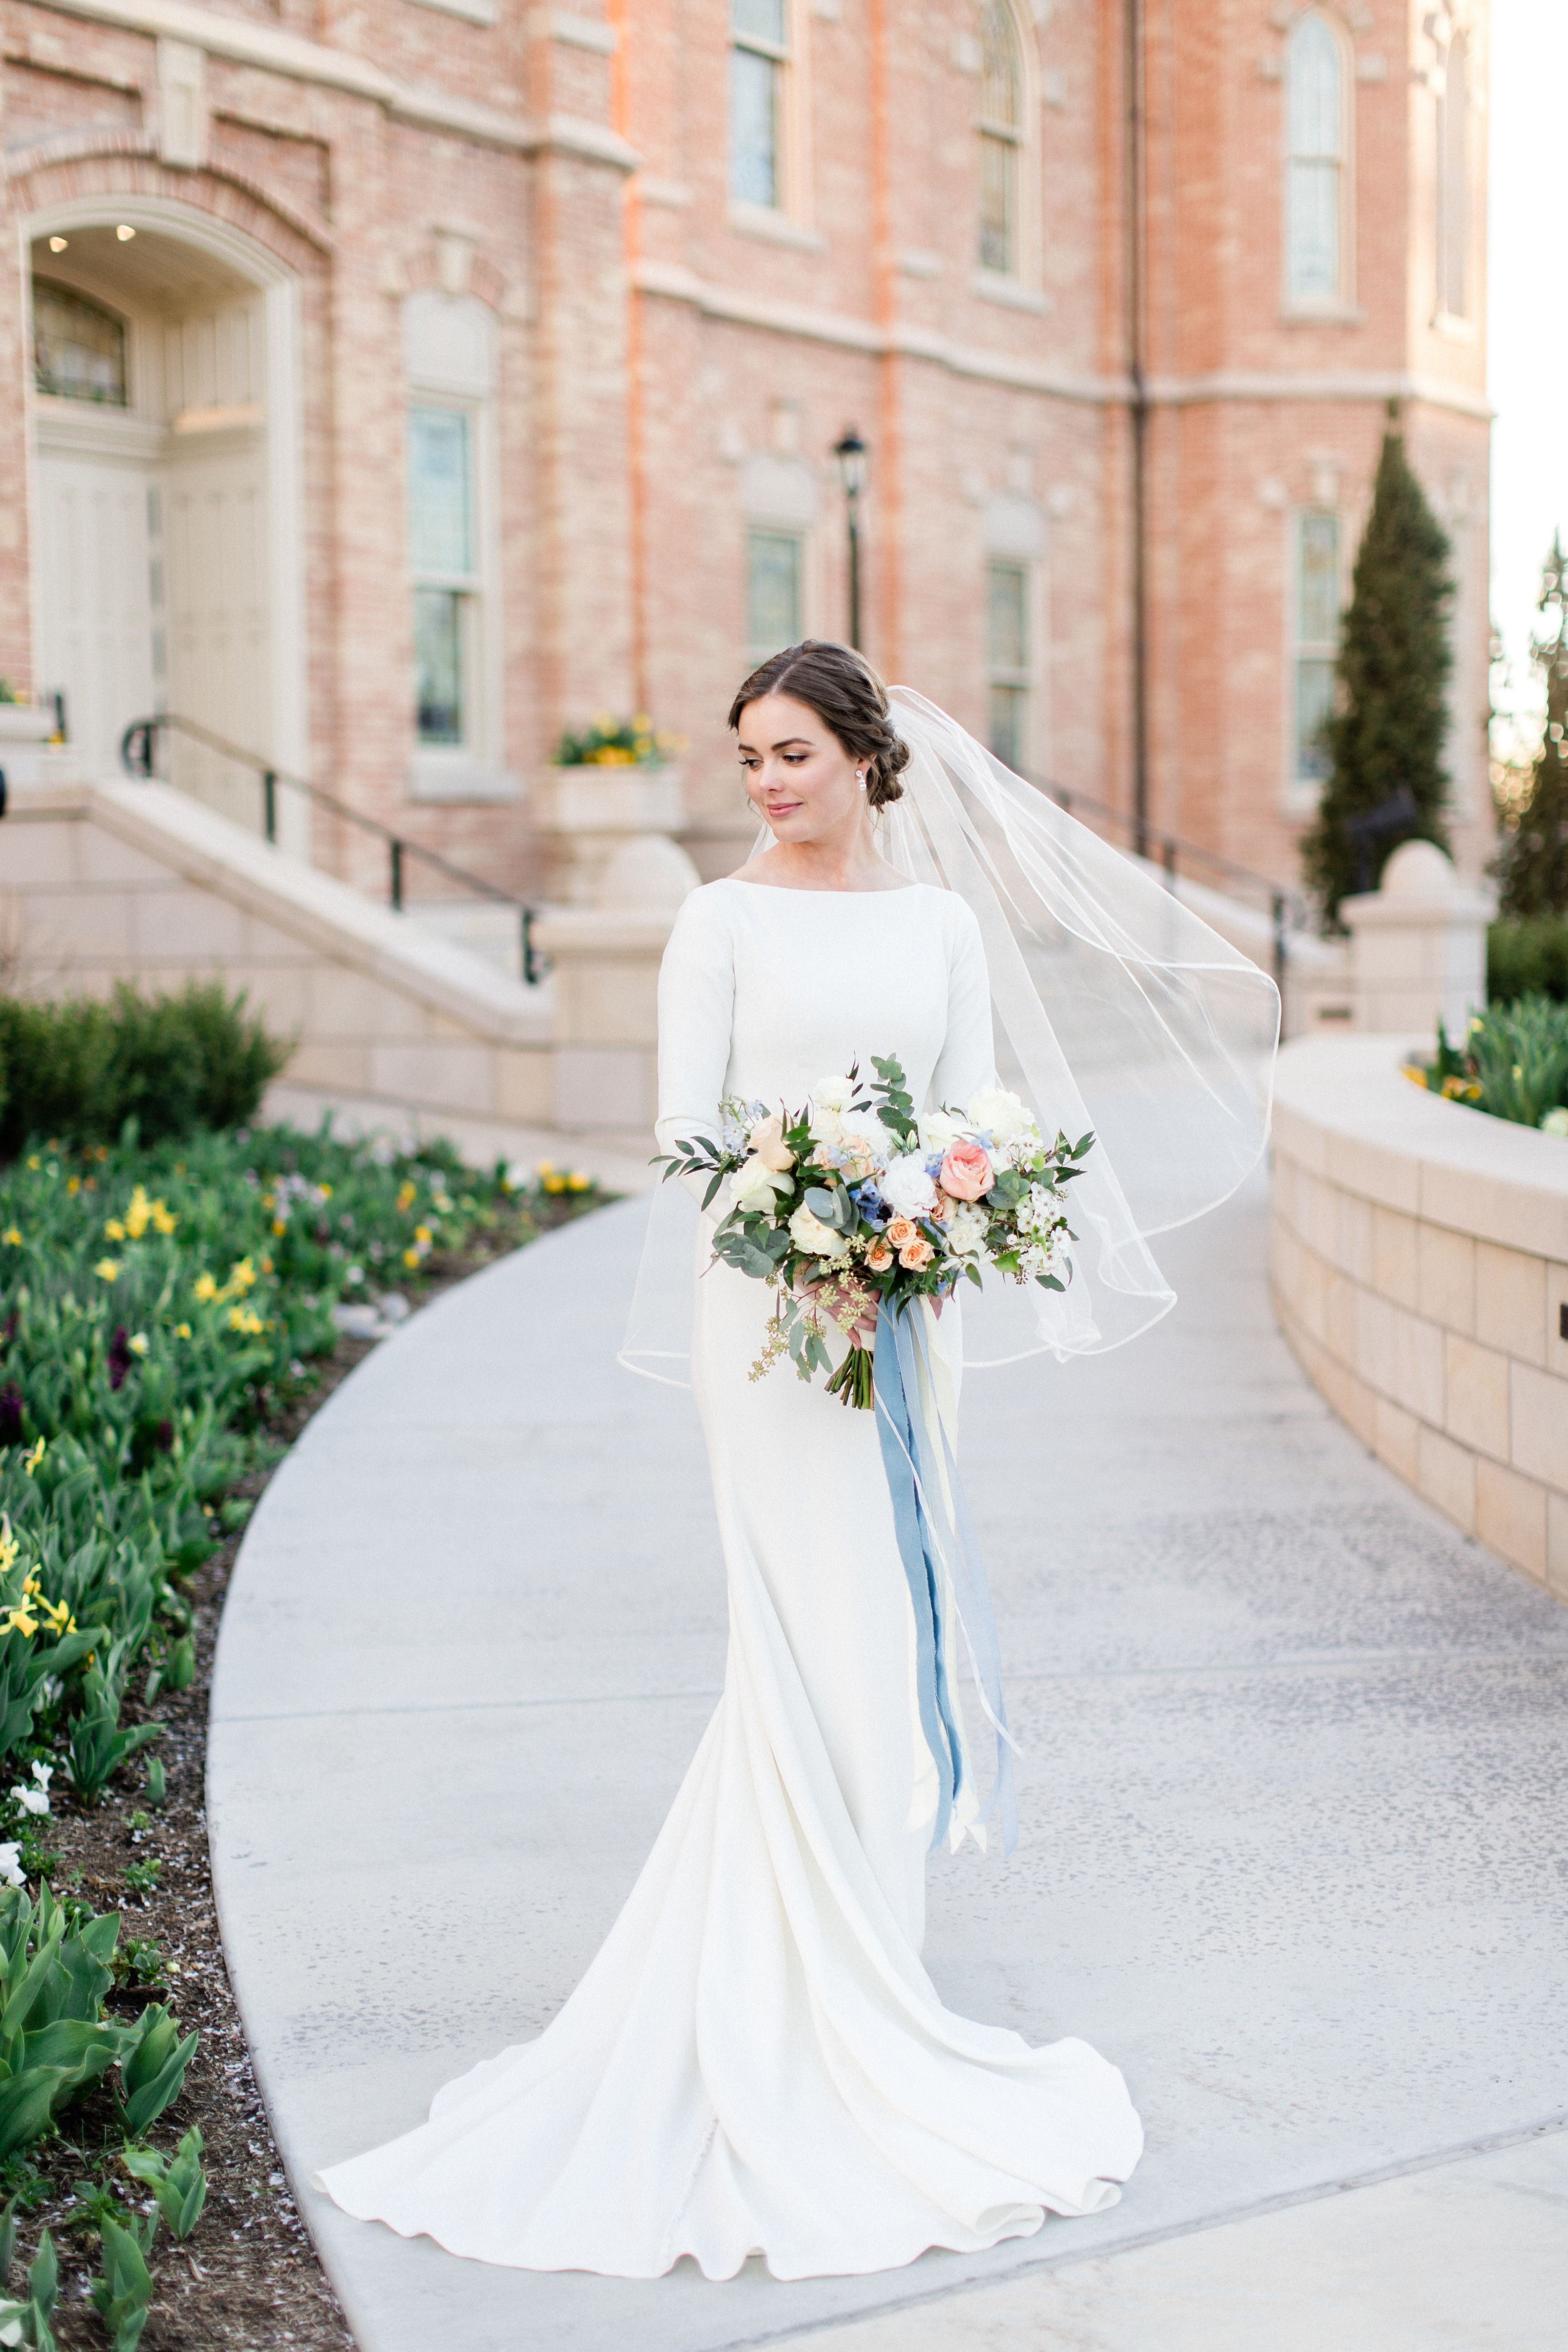 Long Sleeve Modest Wedding Dress No Lace Or Beading Very Simple And Classic Mo Modest Long Sleeve Wedding Dresses Modest Wedding Dresses Wedding Dresses Lace [ 5000 x 3333 Pixel ]